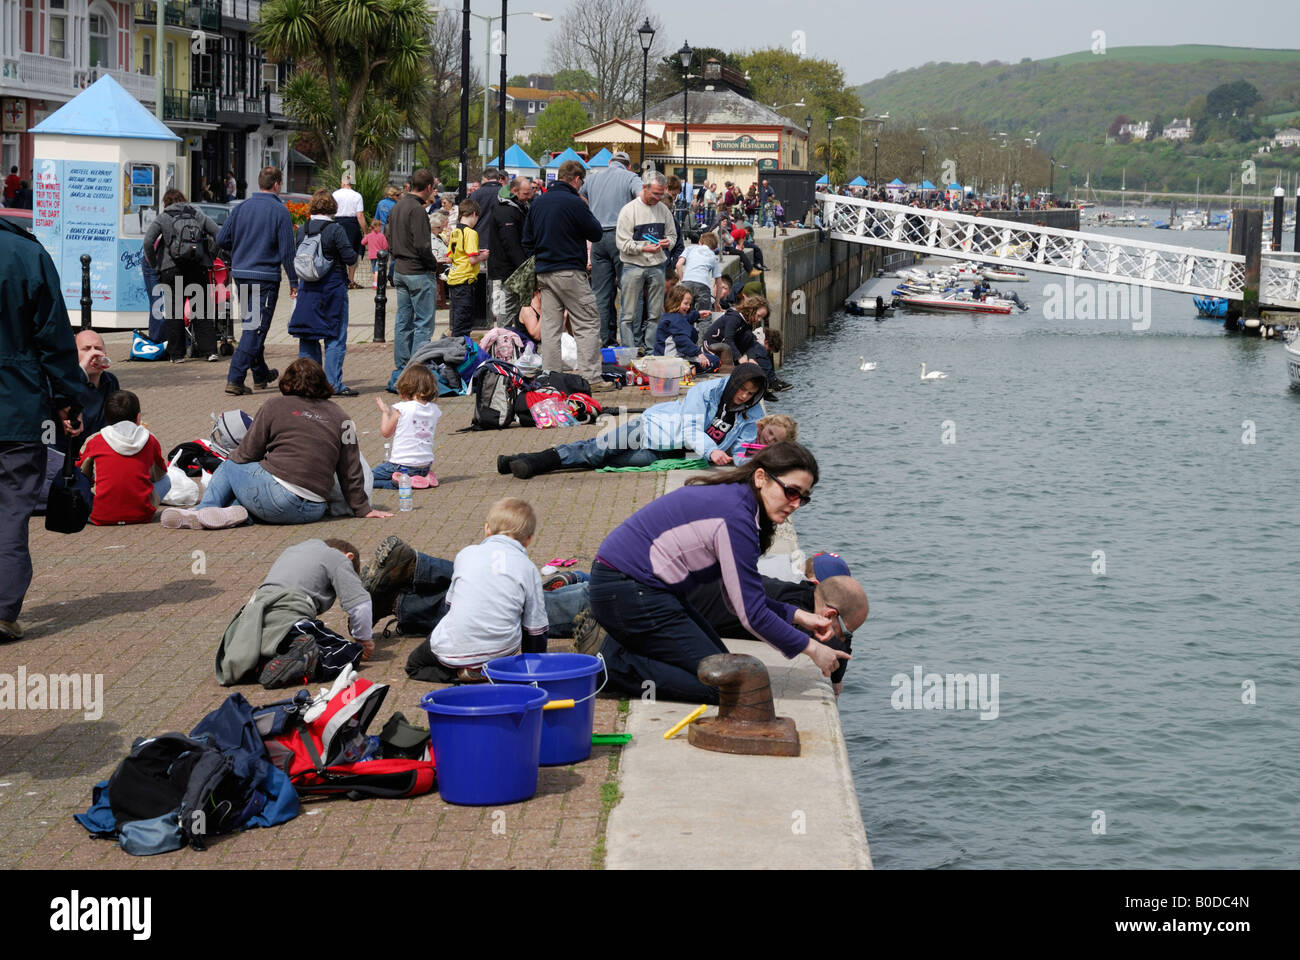 People fishing for crabs in dartmouth devon uk stock for Videos of people fishing